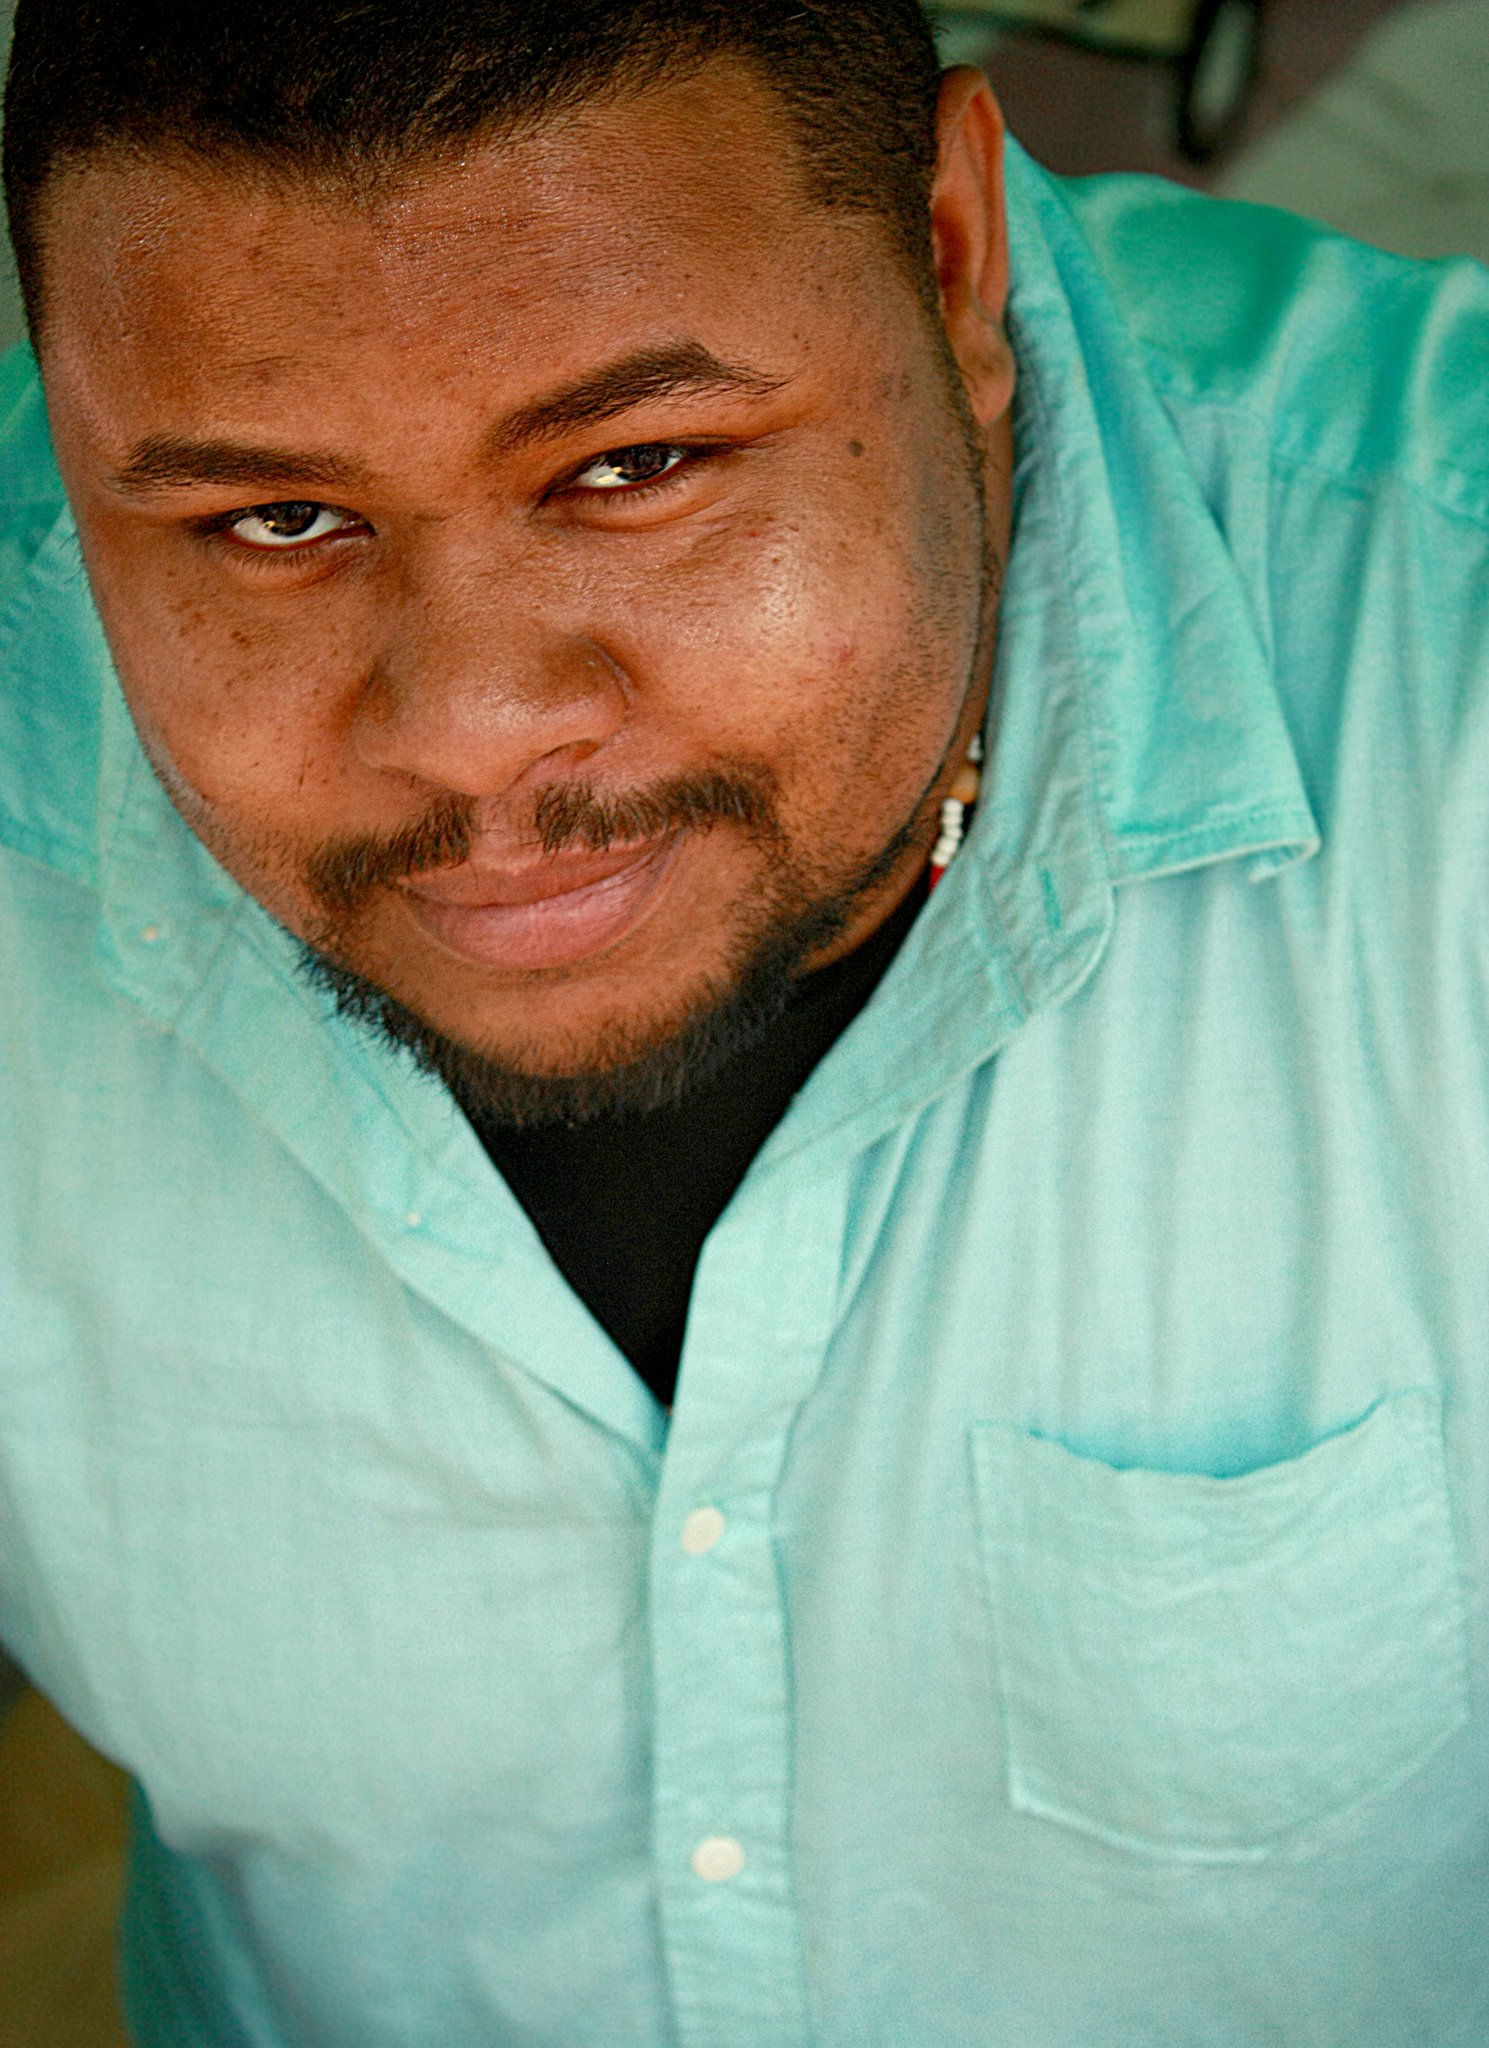 MichaelWTwitty